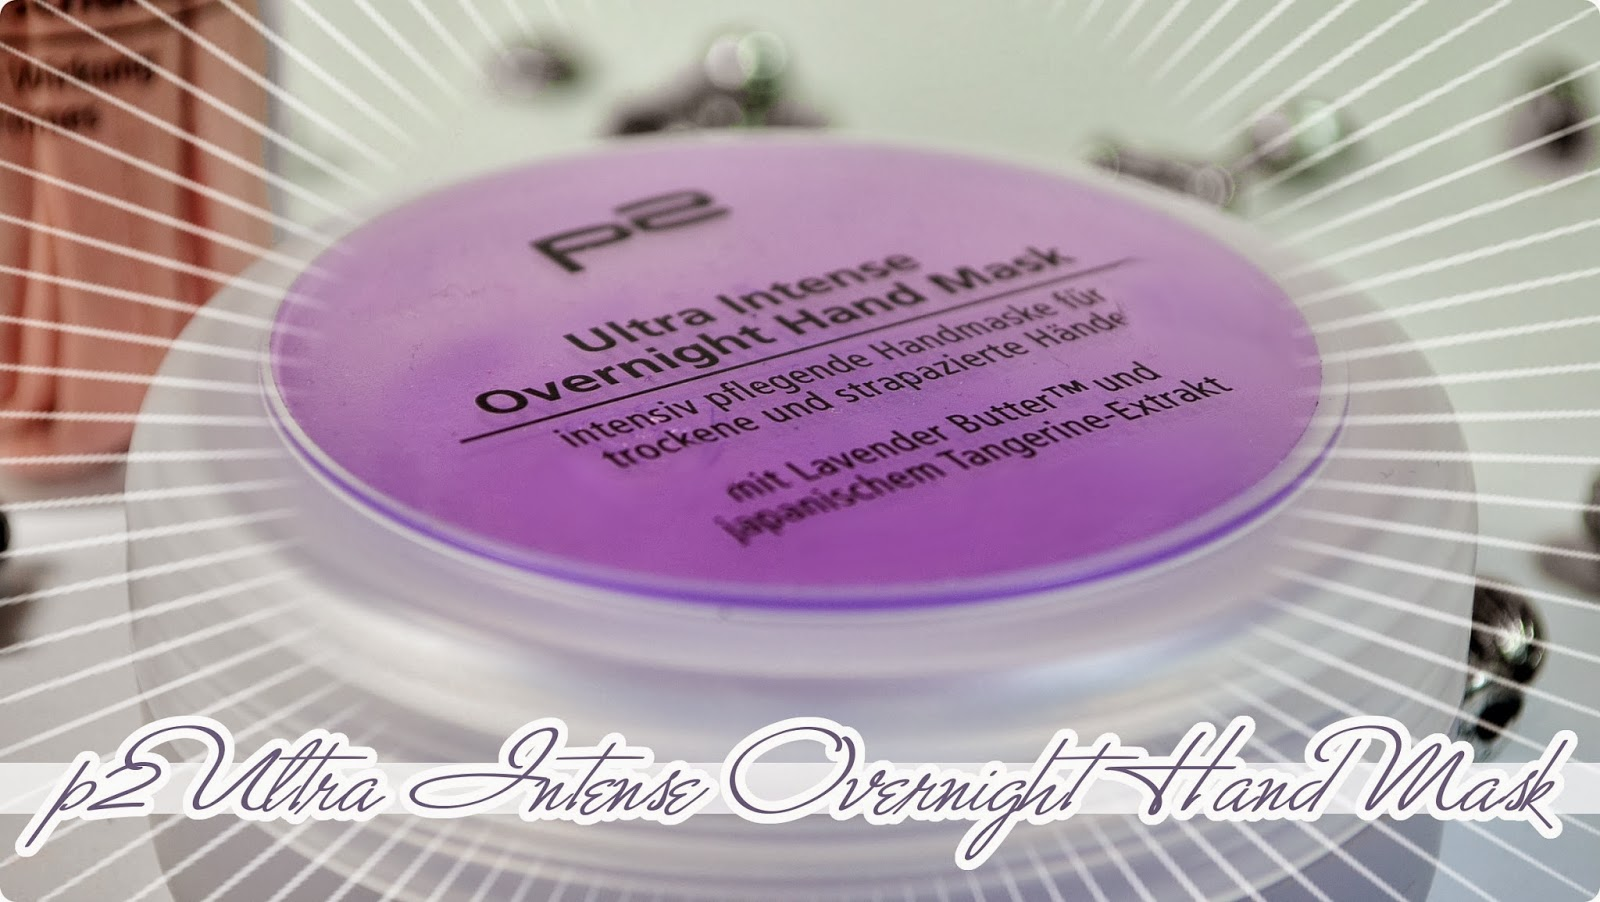 p2 Auslistungen 2014 - Ultra Intense Overnight Hand Mask - Review + Swatches